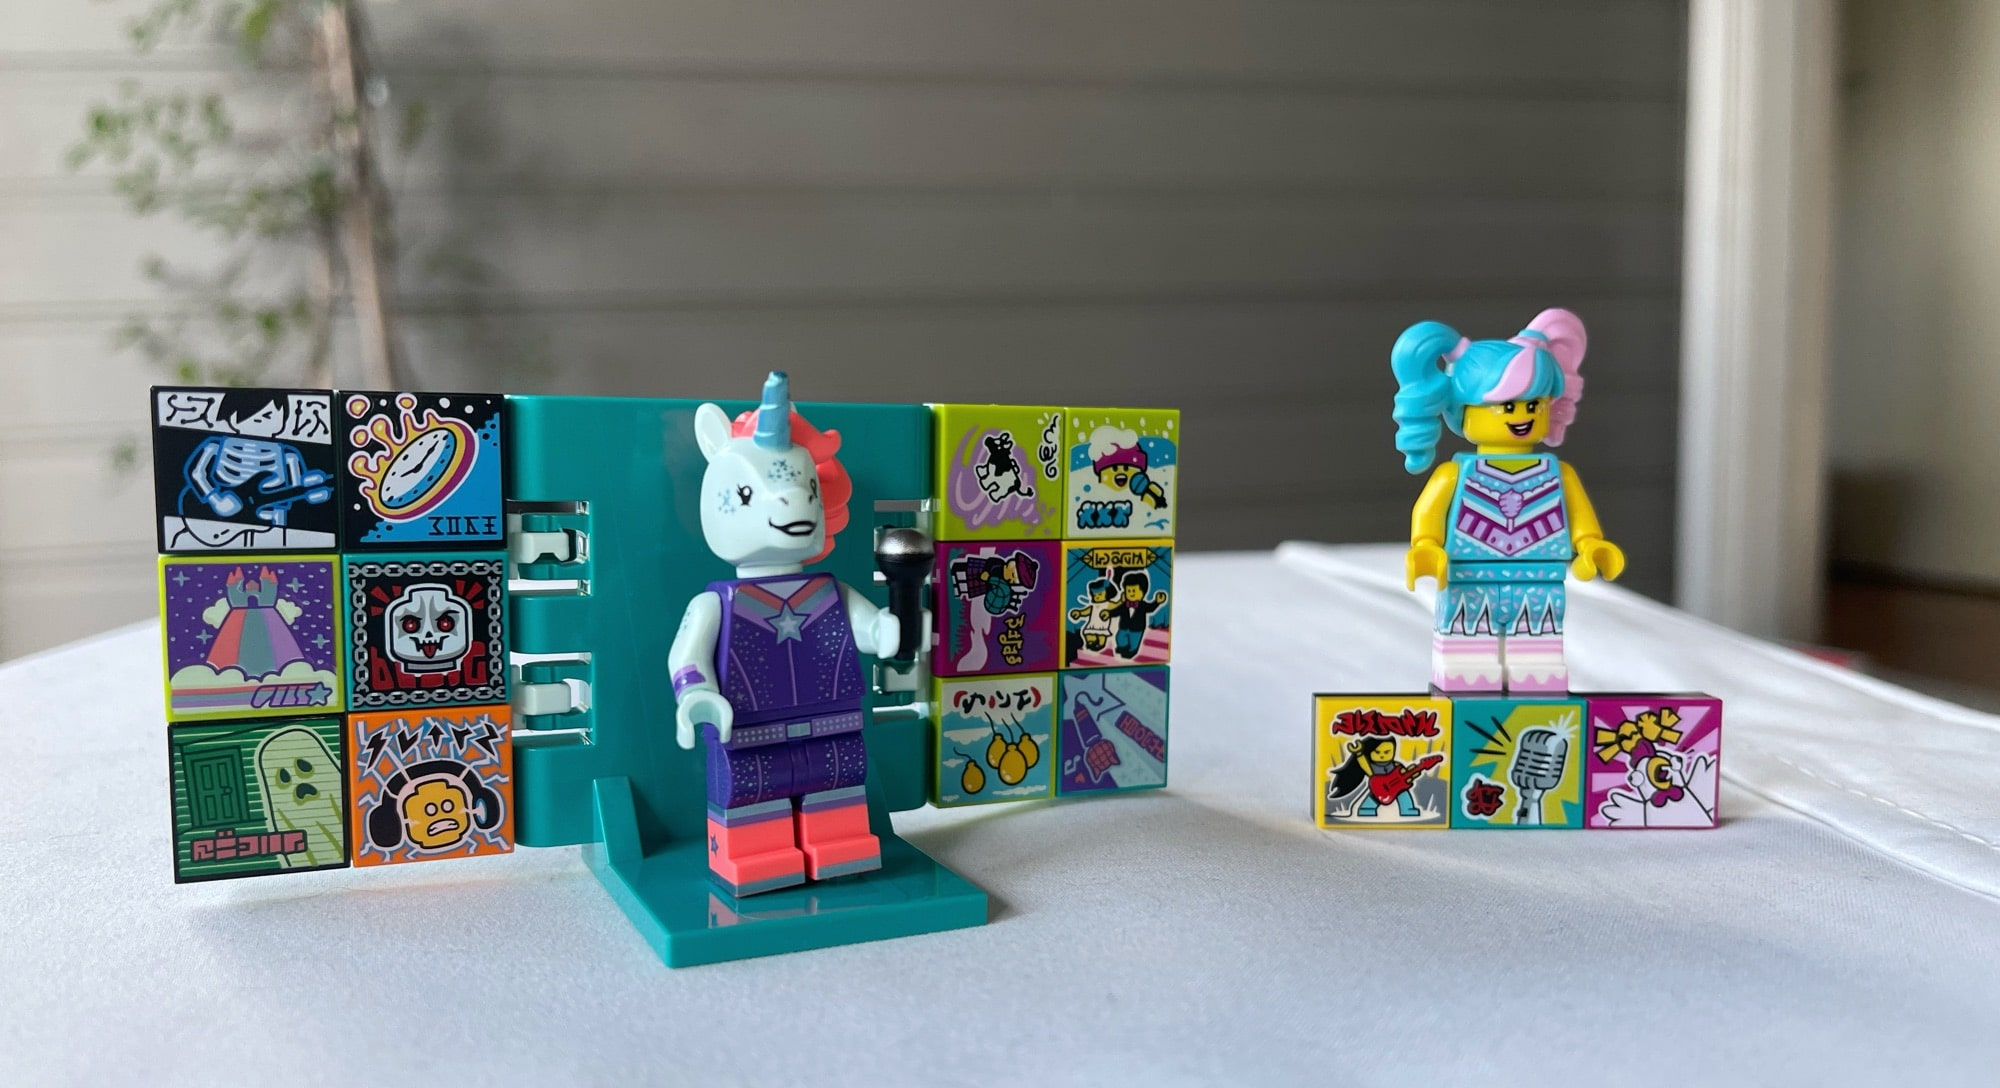 The Lego toys you're playing with